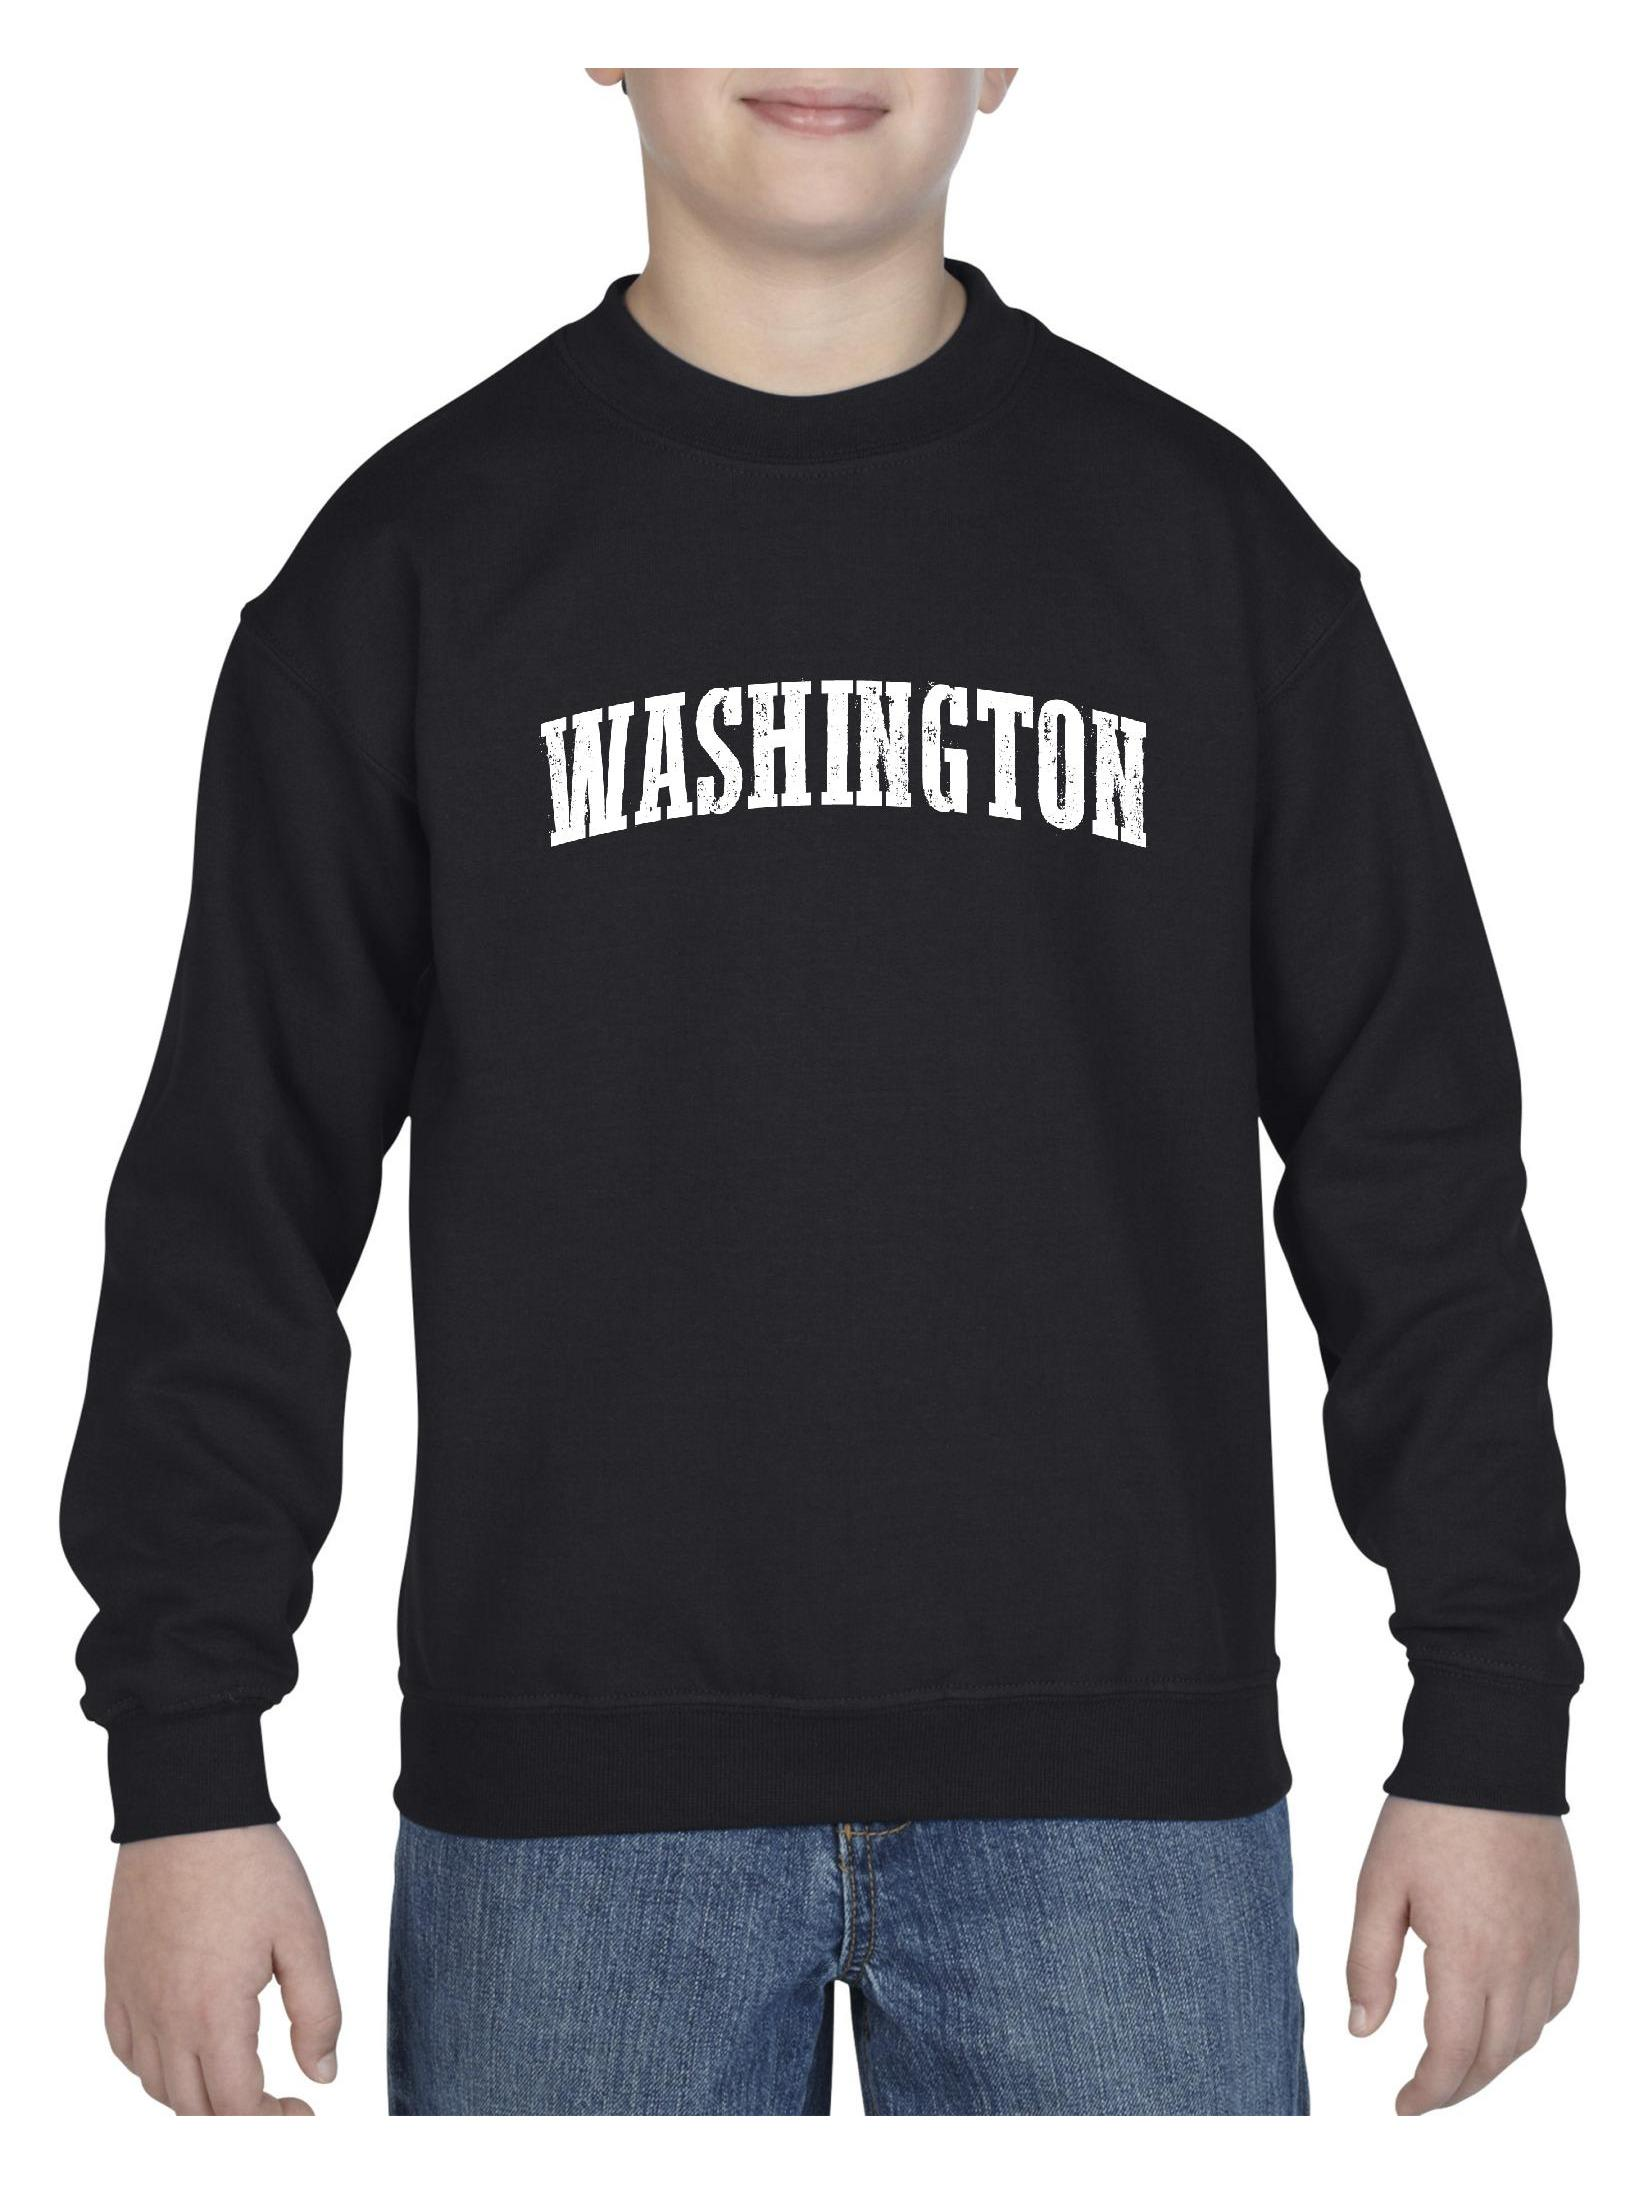 Washington State Flag Unisex Youth Crewneck Sweatshirt